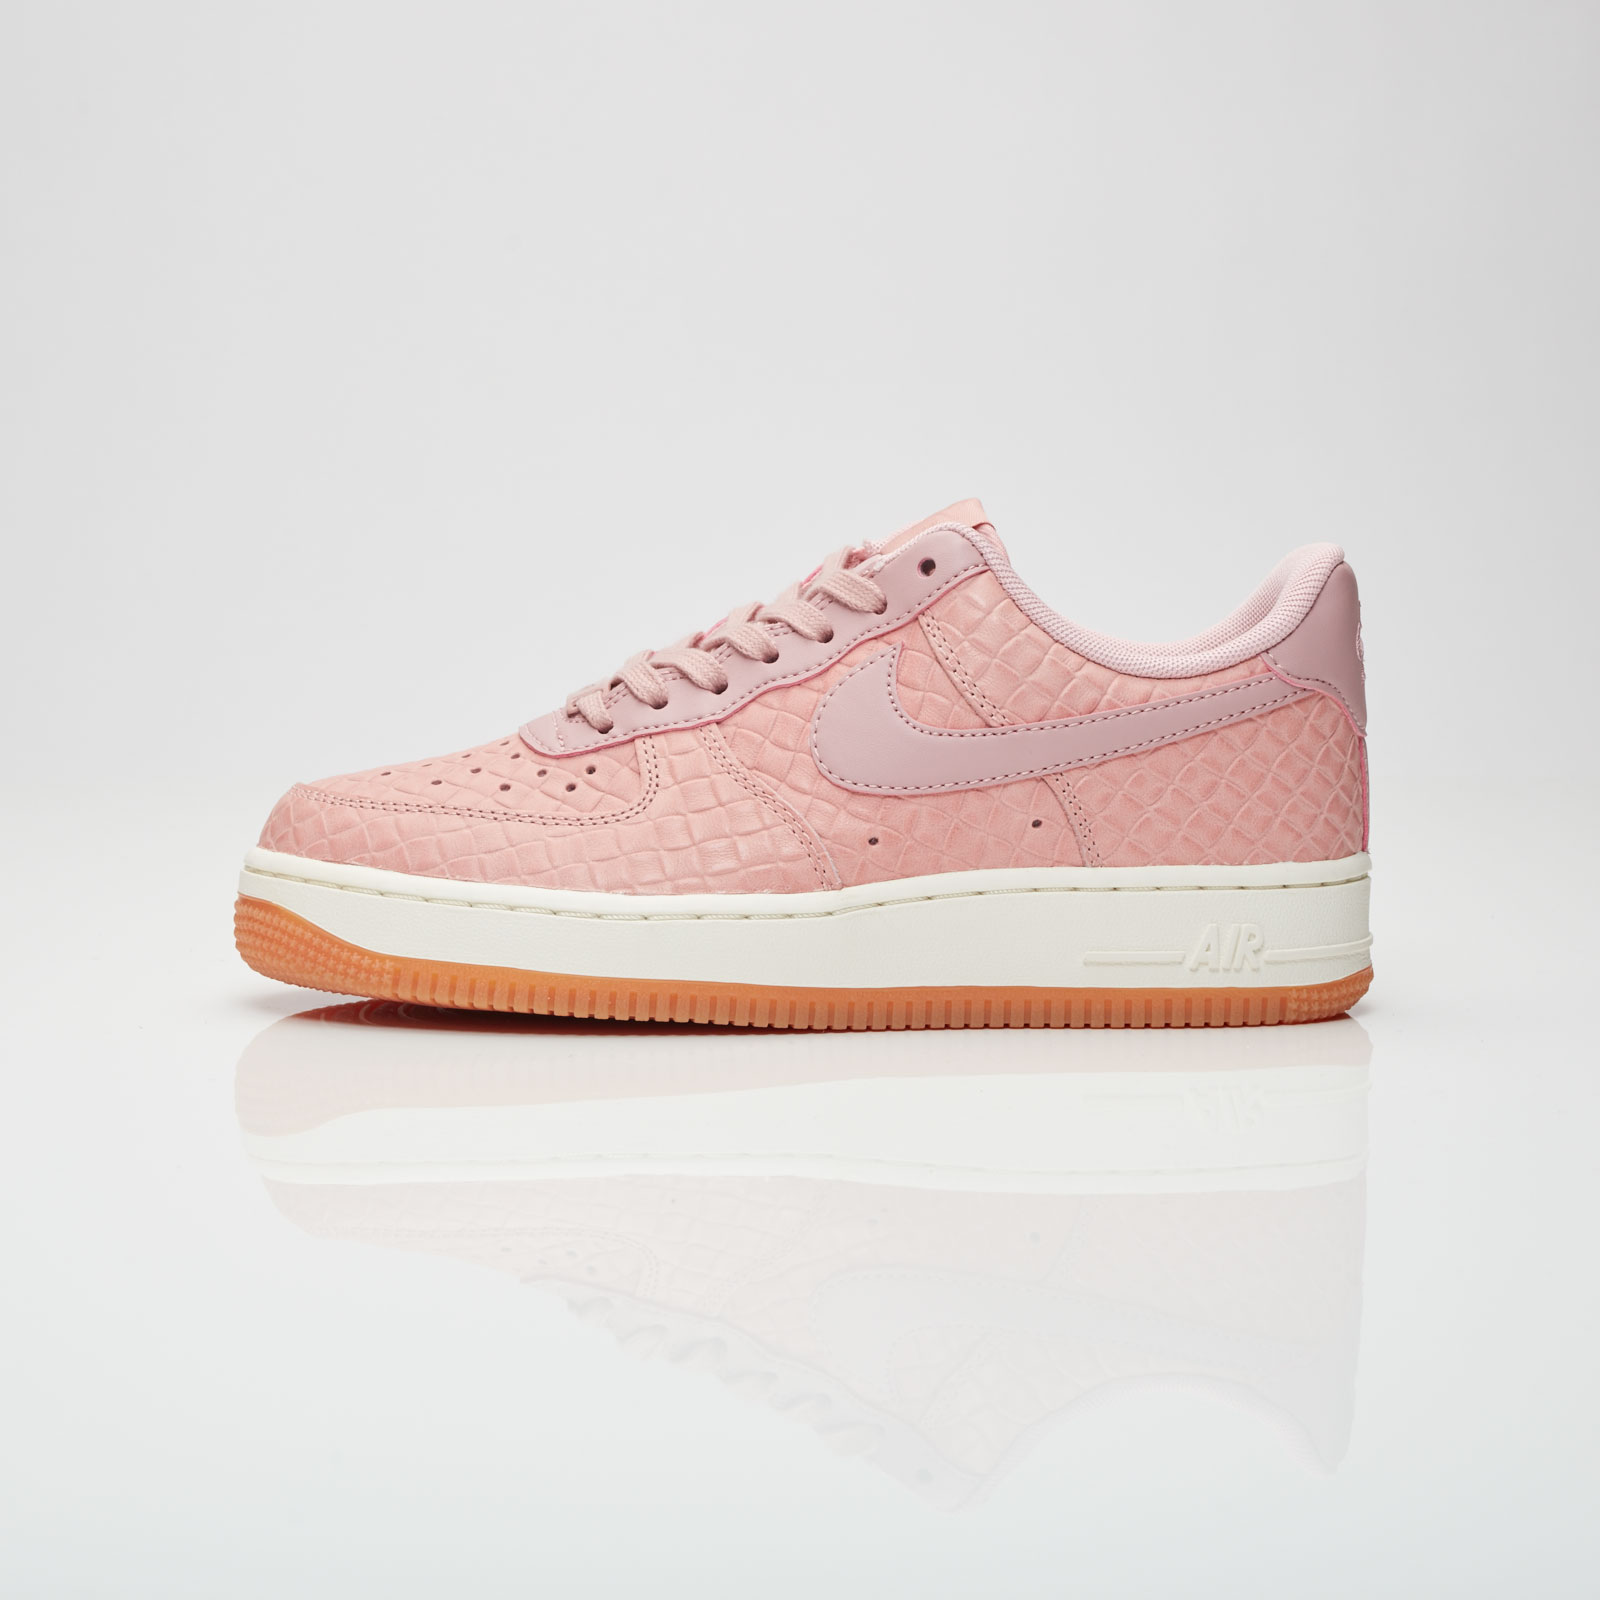 nike womens air force 1 pink glaze air 23 air jordan. Black Bedroom Furniture Sets. Home Design Ideas